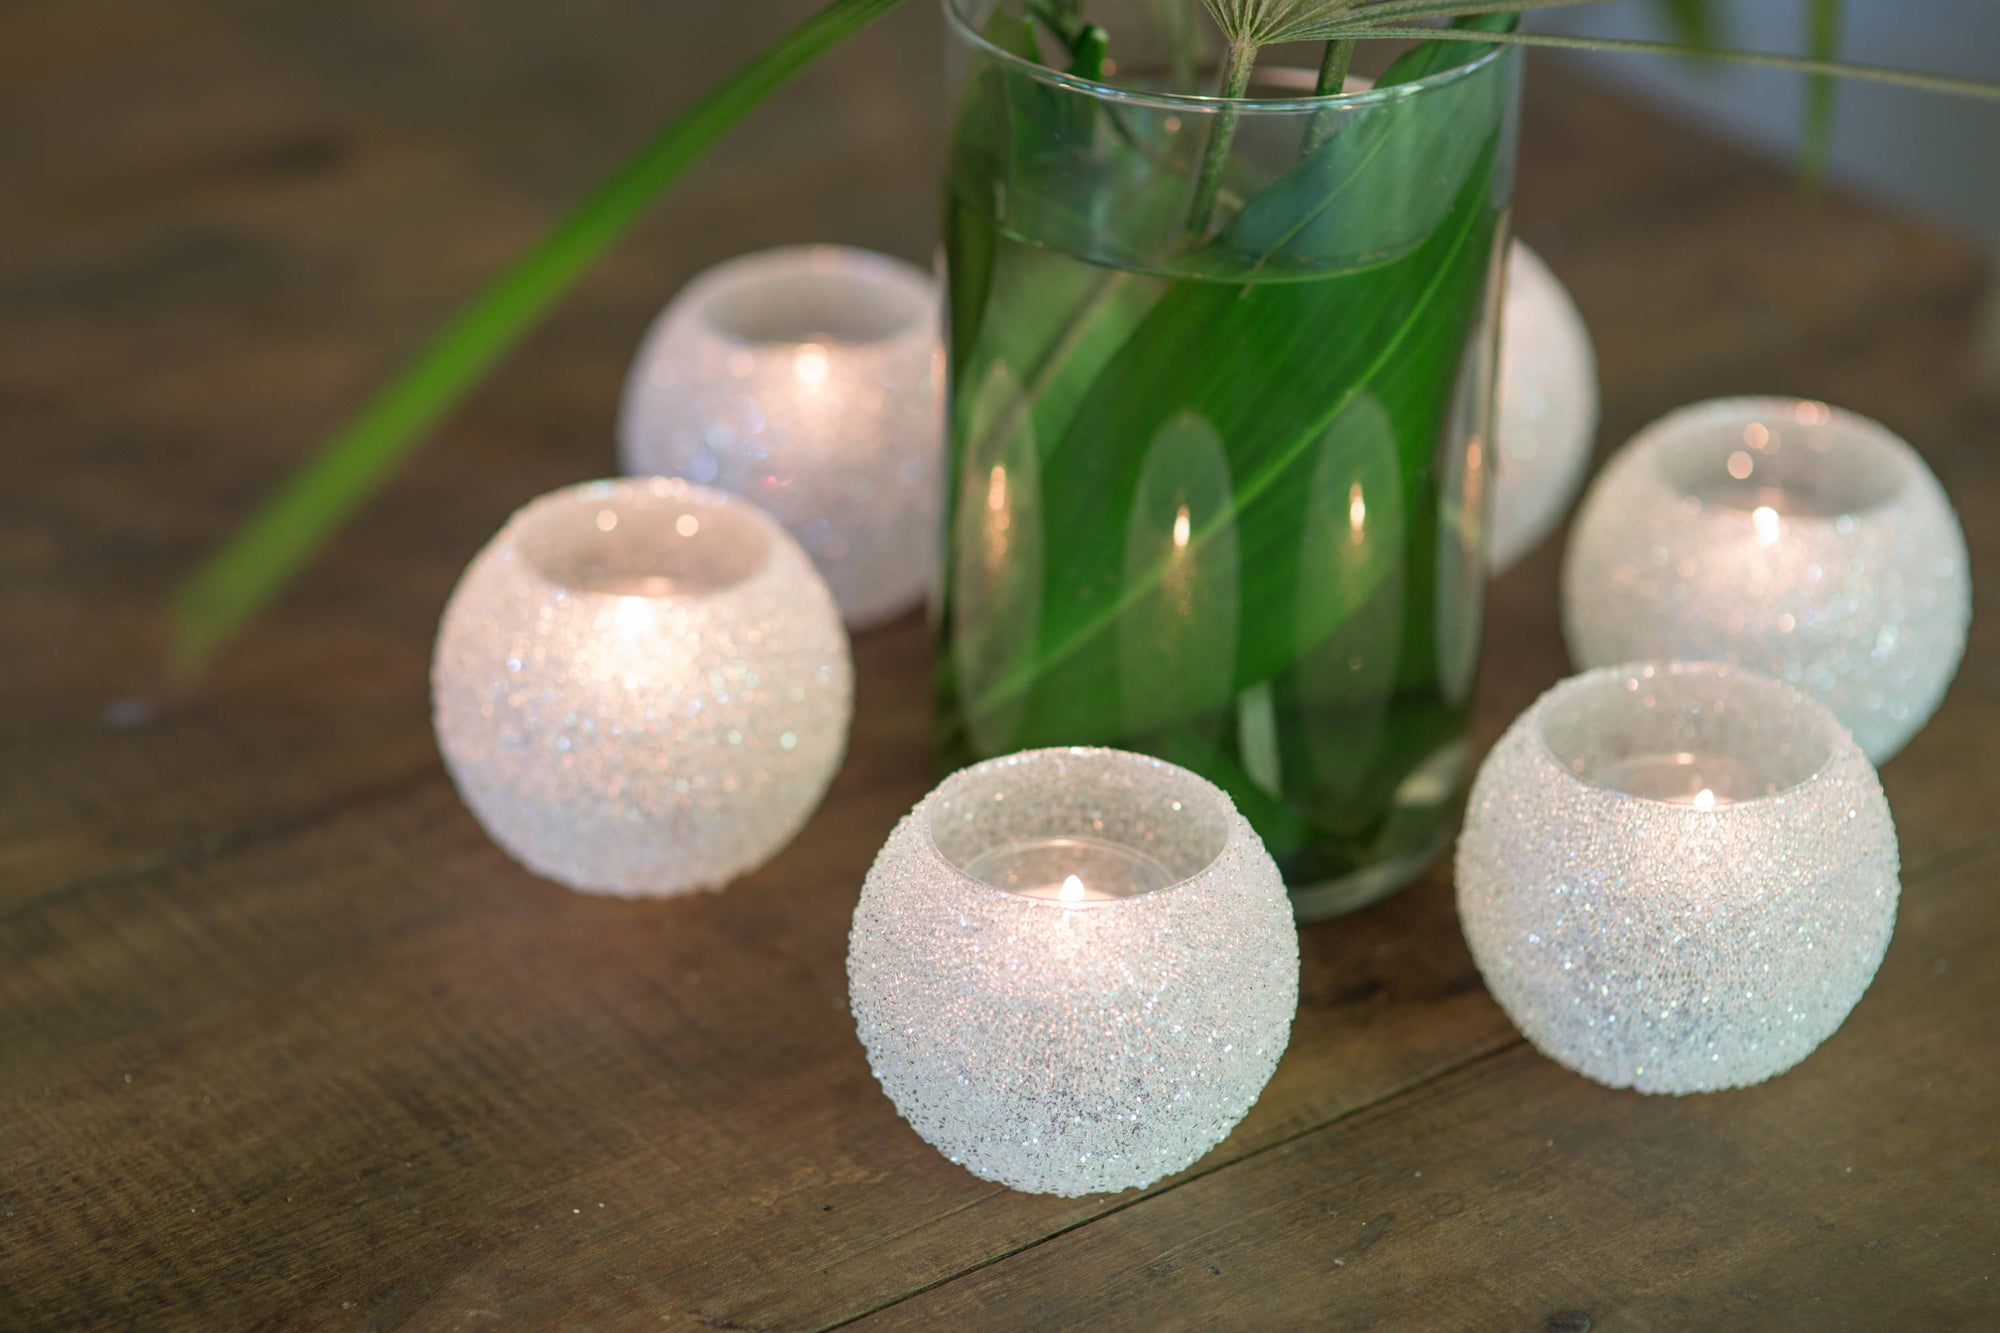 Need To Get Wax Out of Candle Holders? Here Are 3 Easy Tricks!